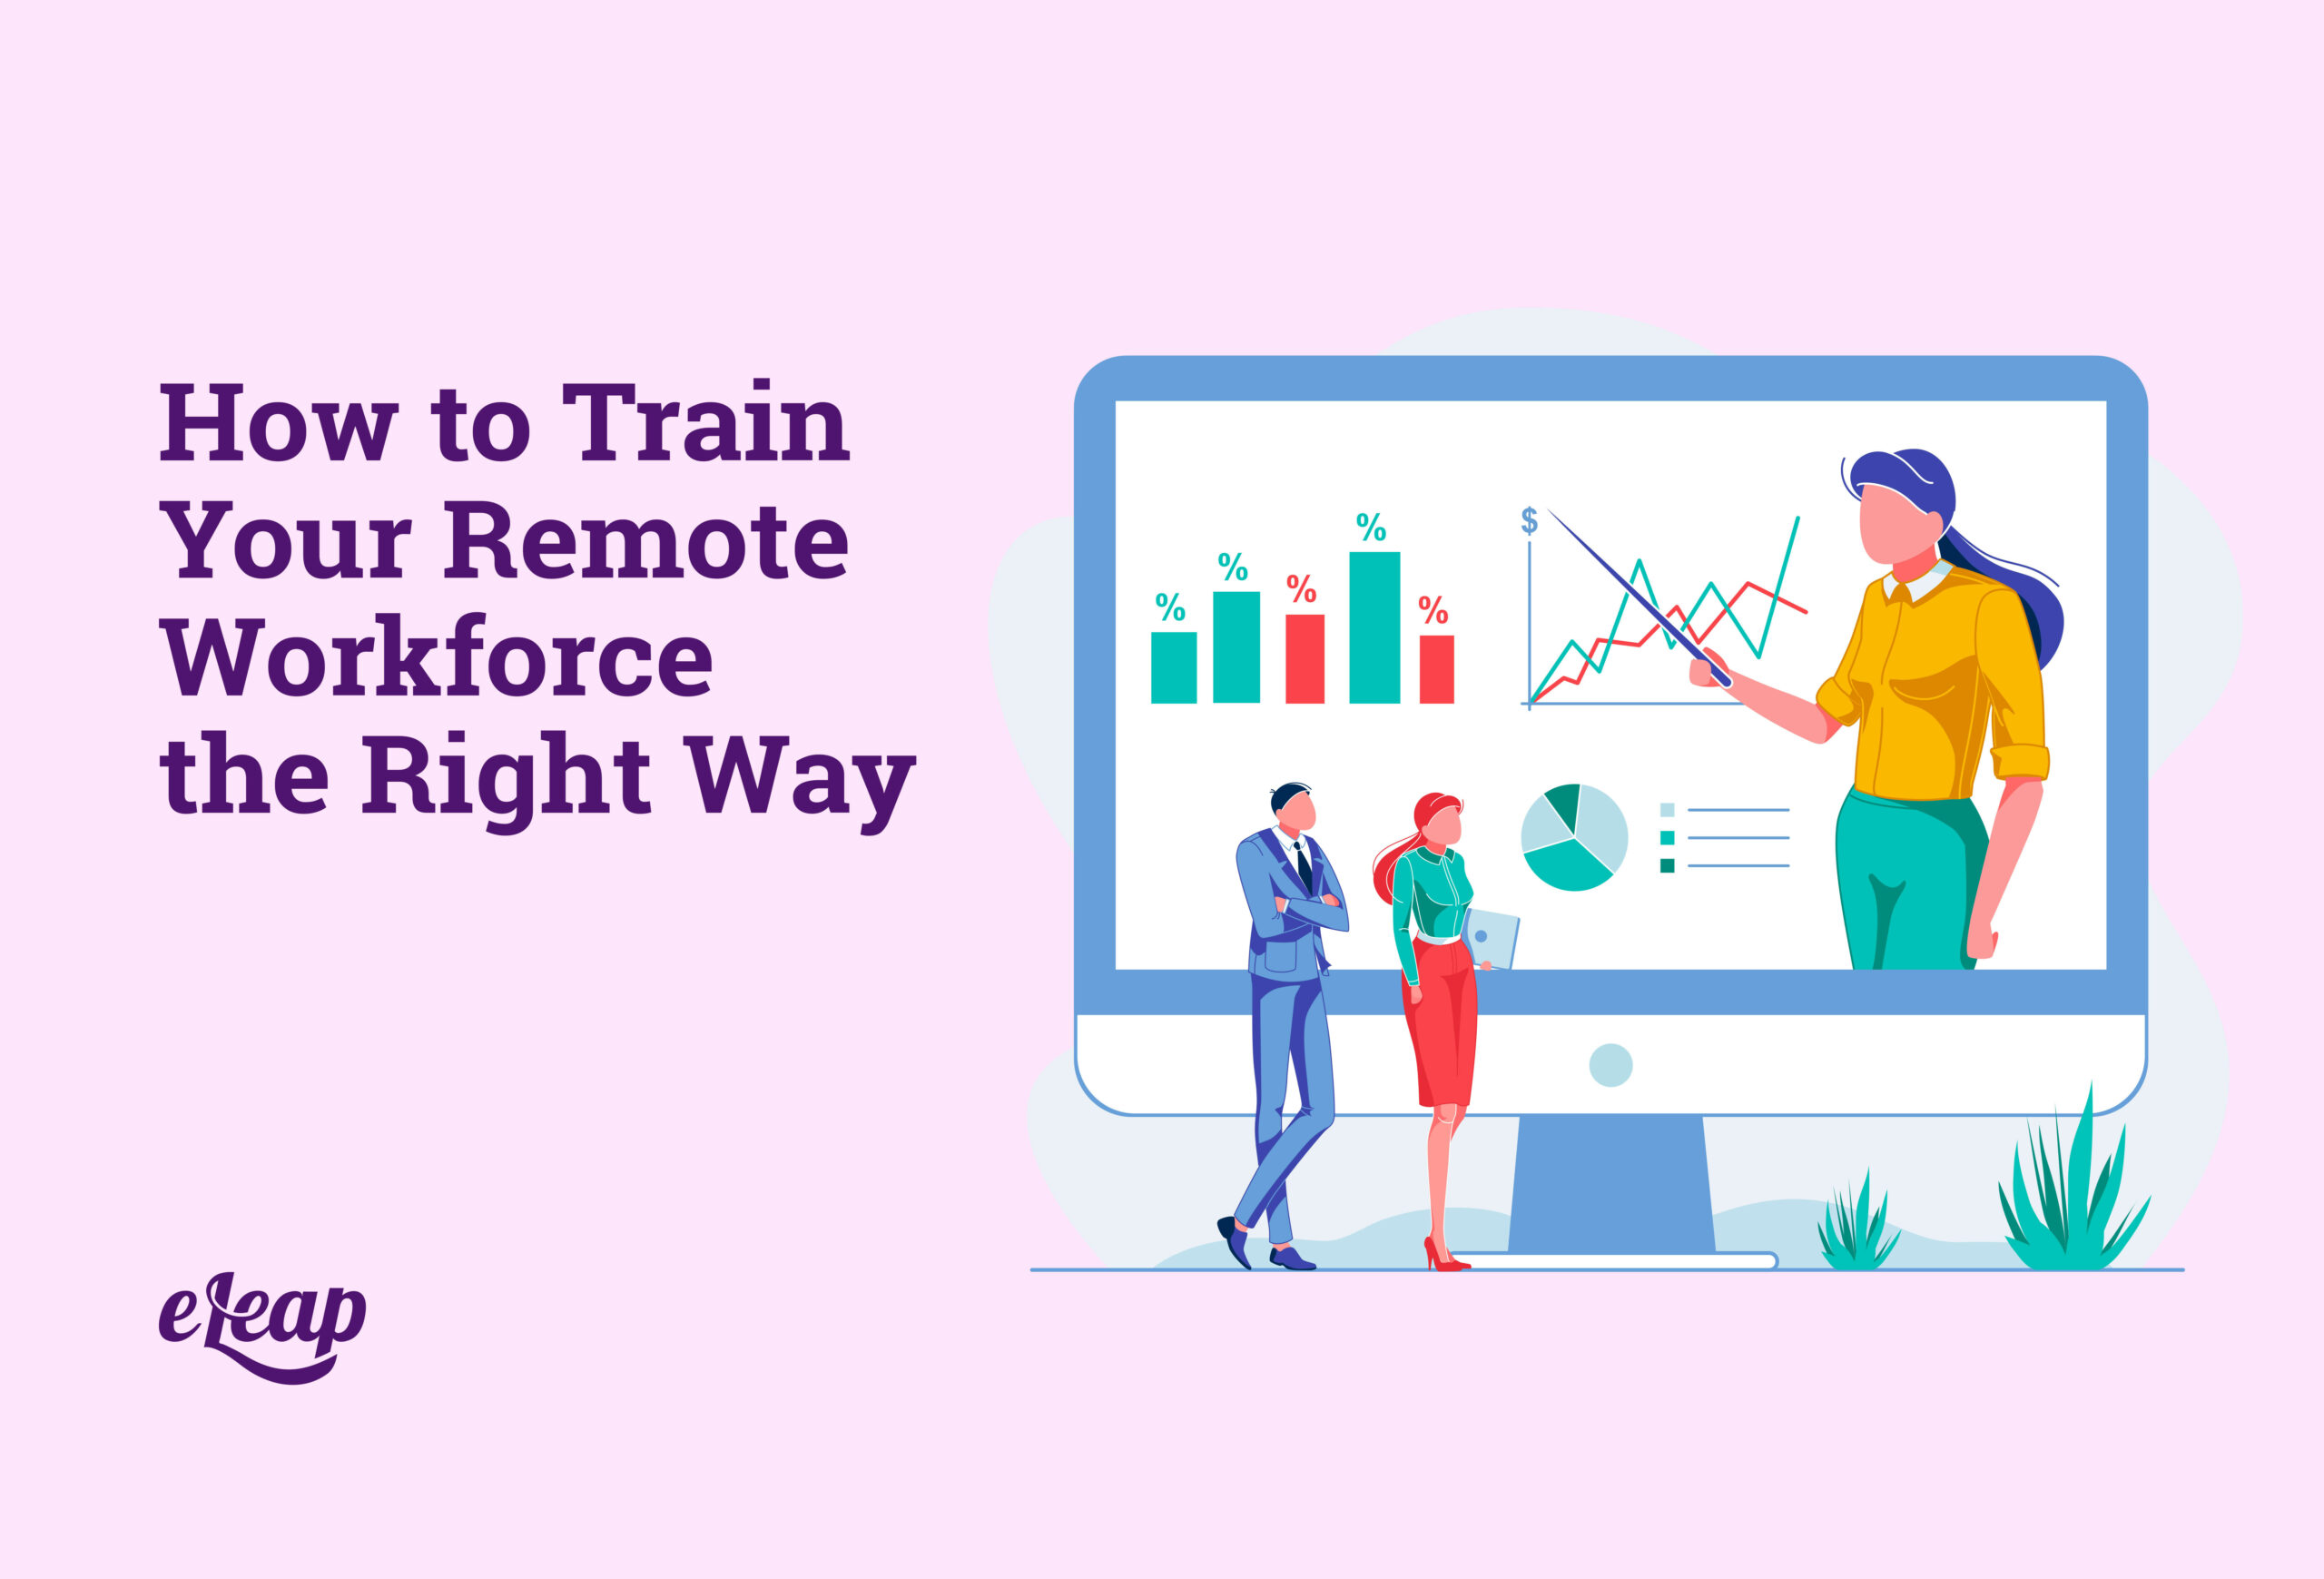 How to Train Your Remote Workforce the Right Way